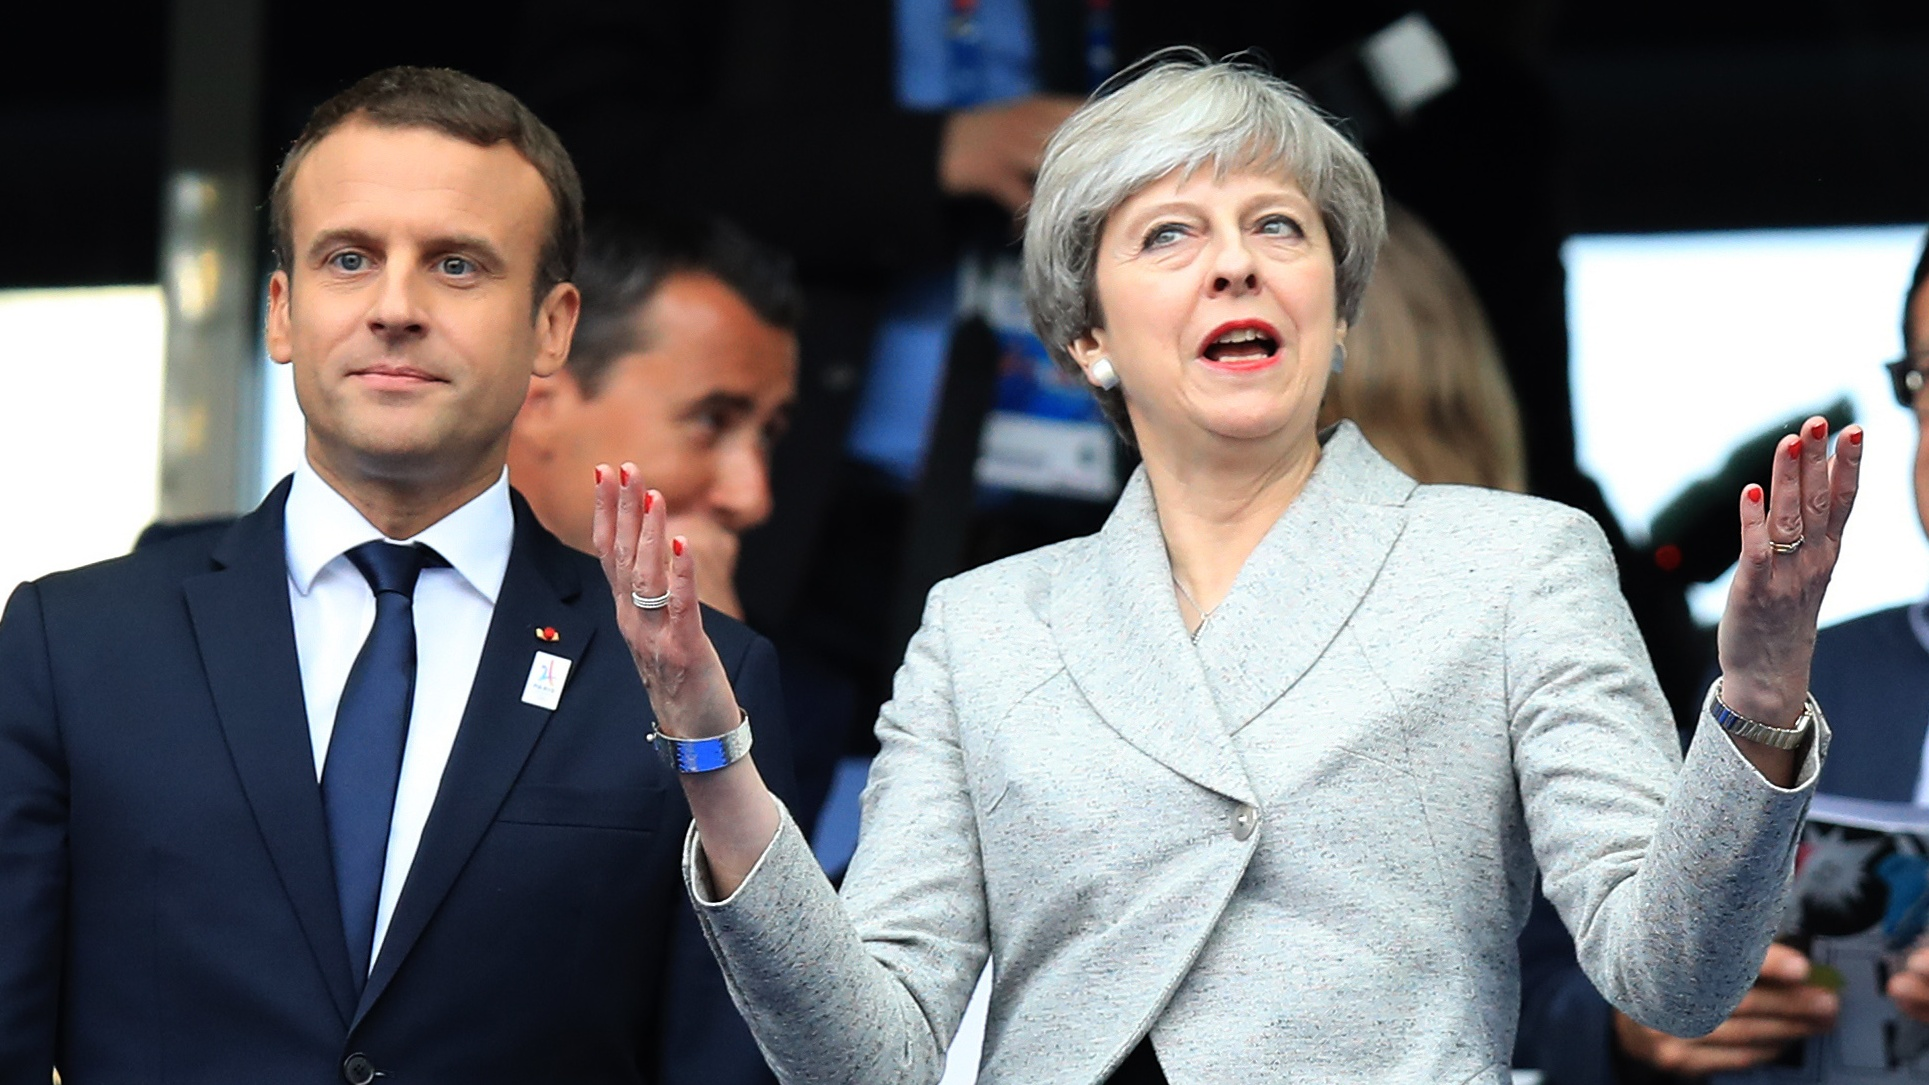 Macron Tells May 'Door Always Open' For UK To Stay In EU